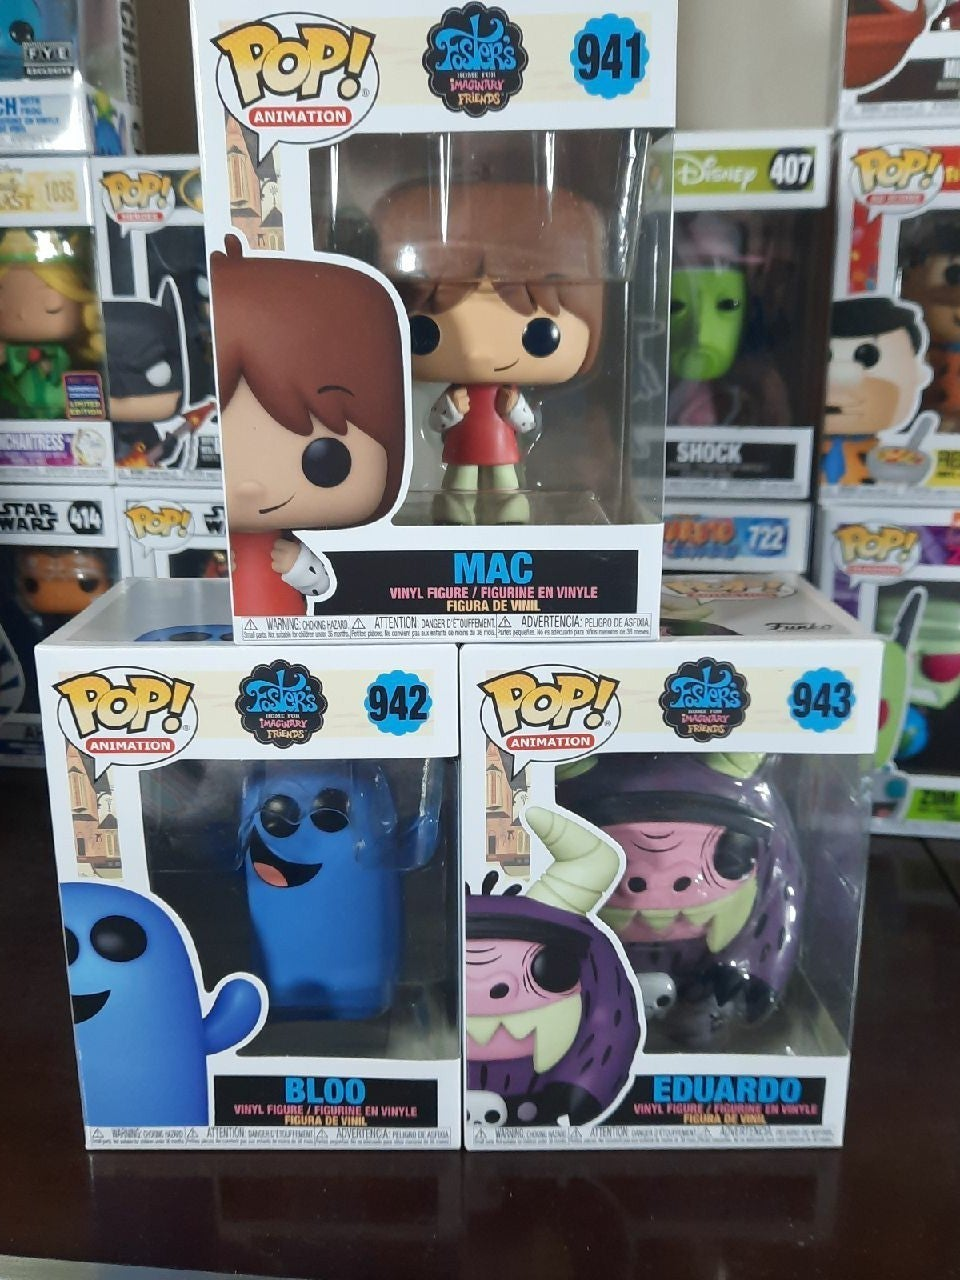 Fosters home for imaginary friends funko